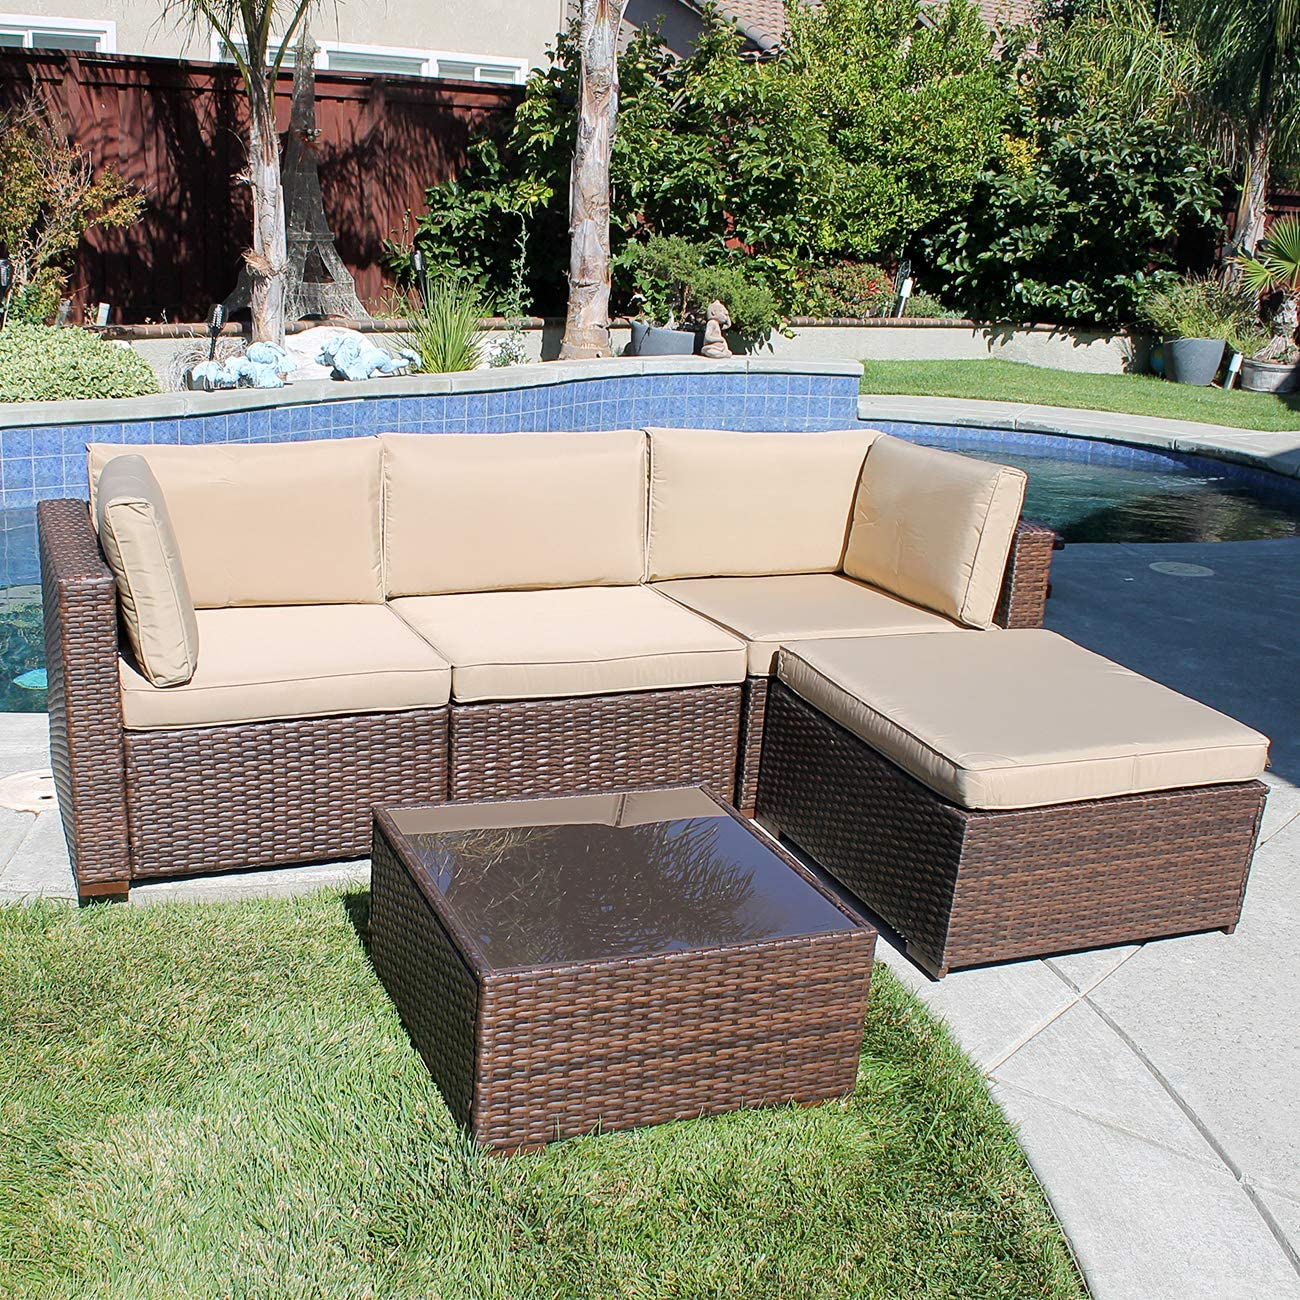 Patiorama 5 Pieces Outdoor Patio Furniture Sets Rattan Sofa Wicker Set, Outdoor Backyard Porch Garden Poolside Balcony Furniture Sets Brown and Beige